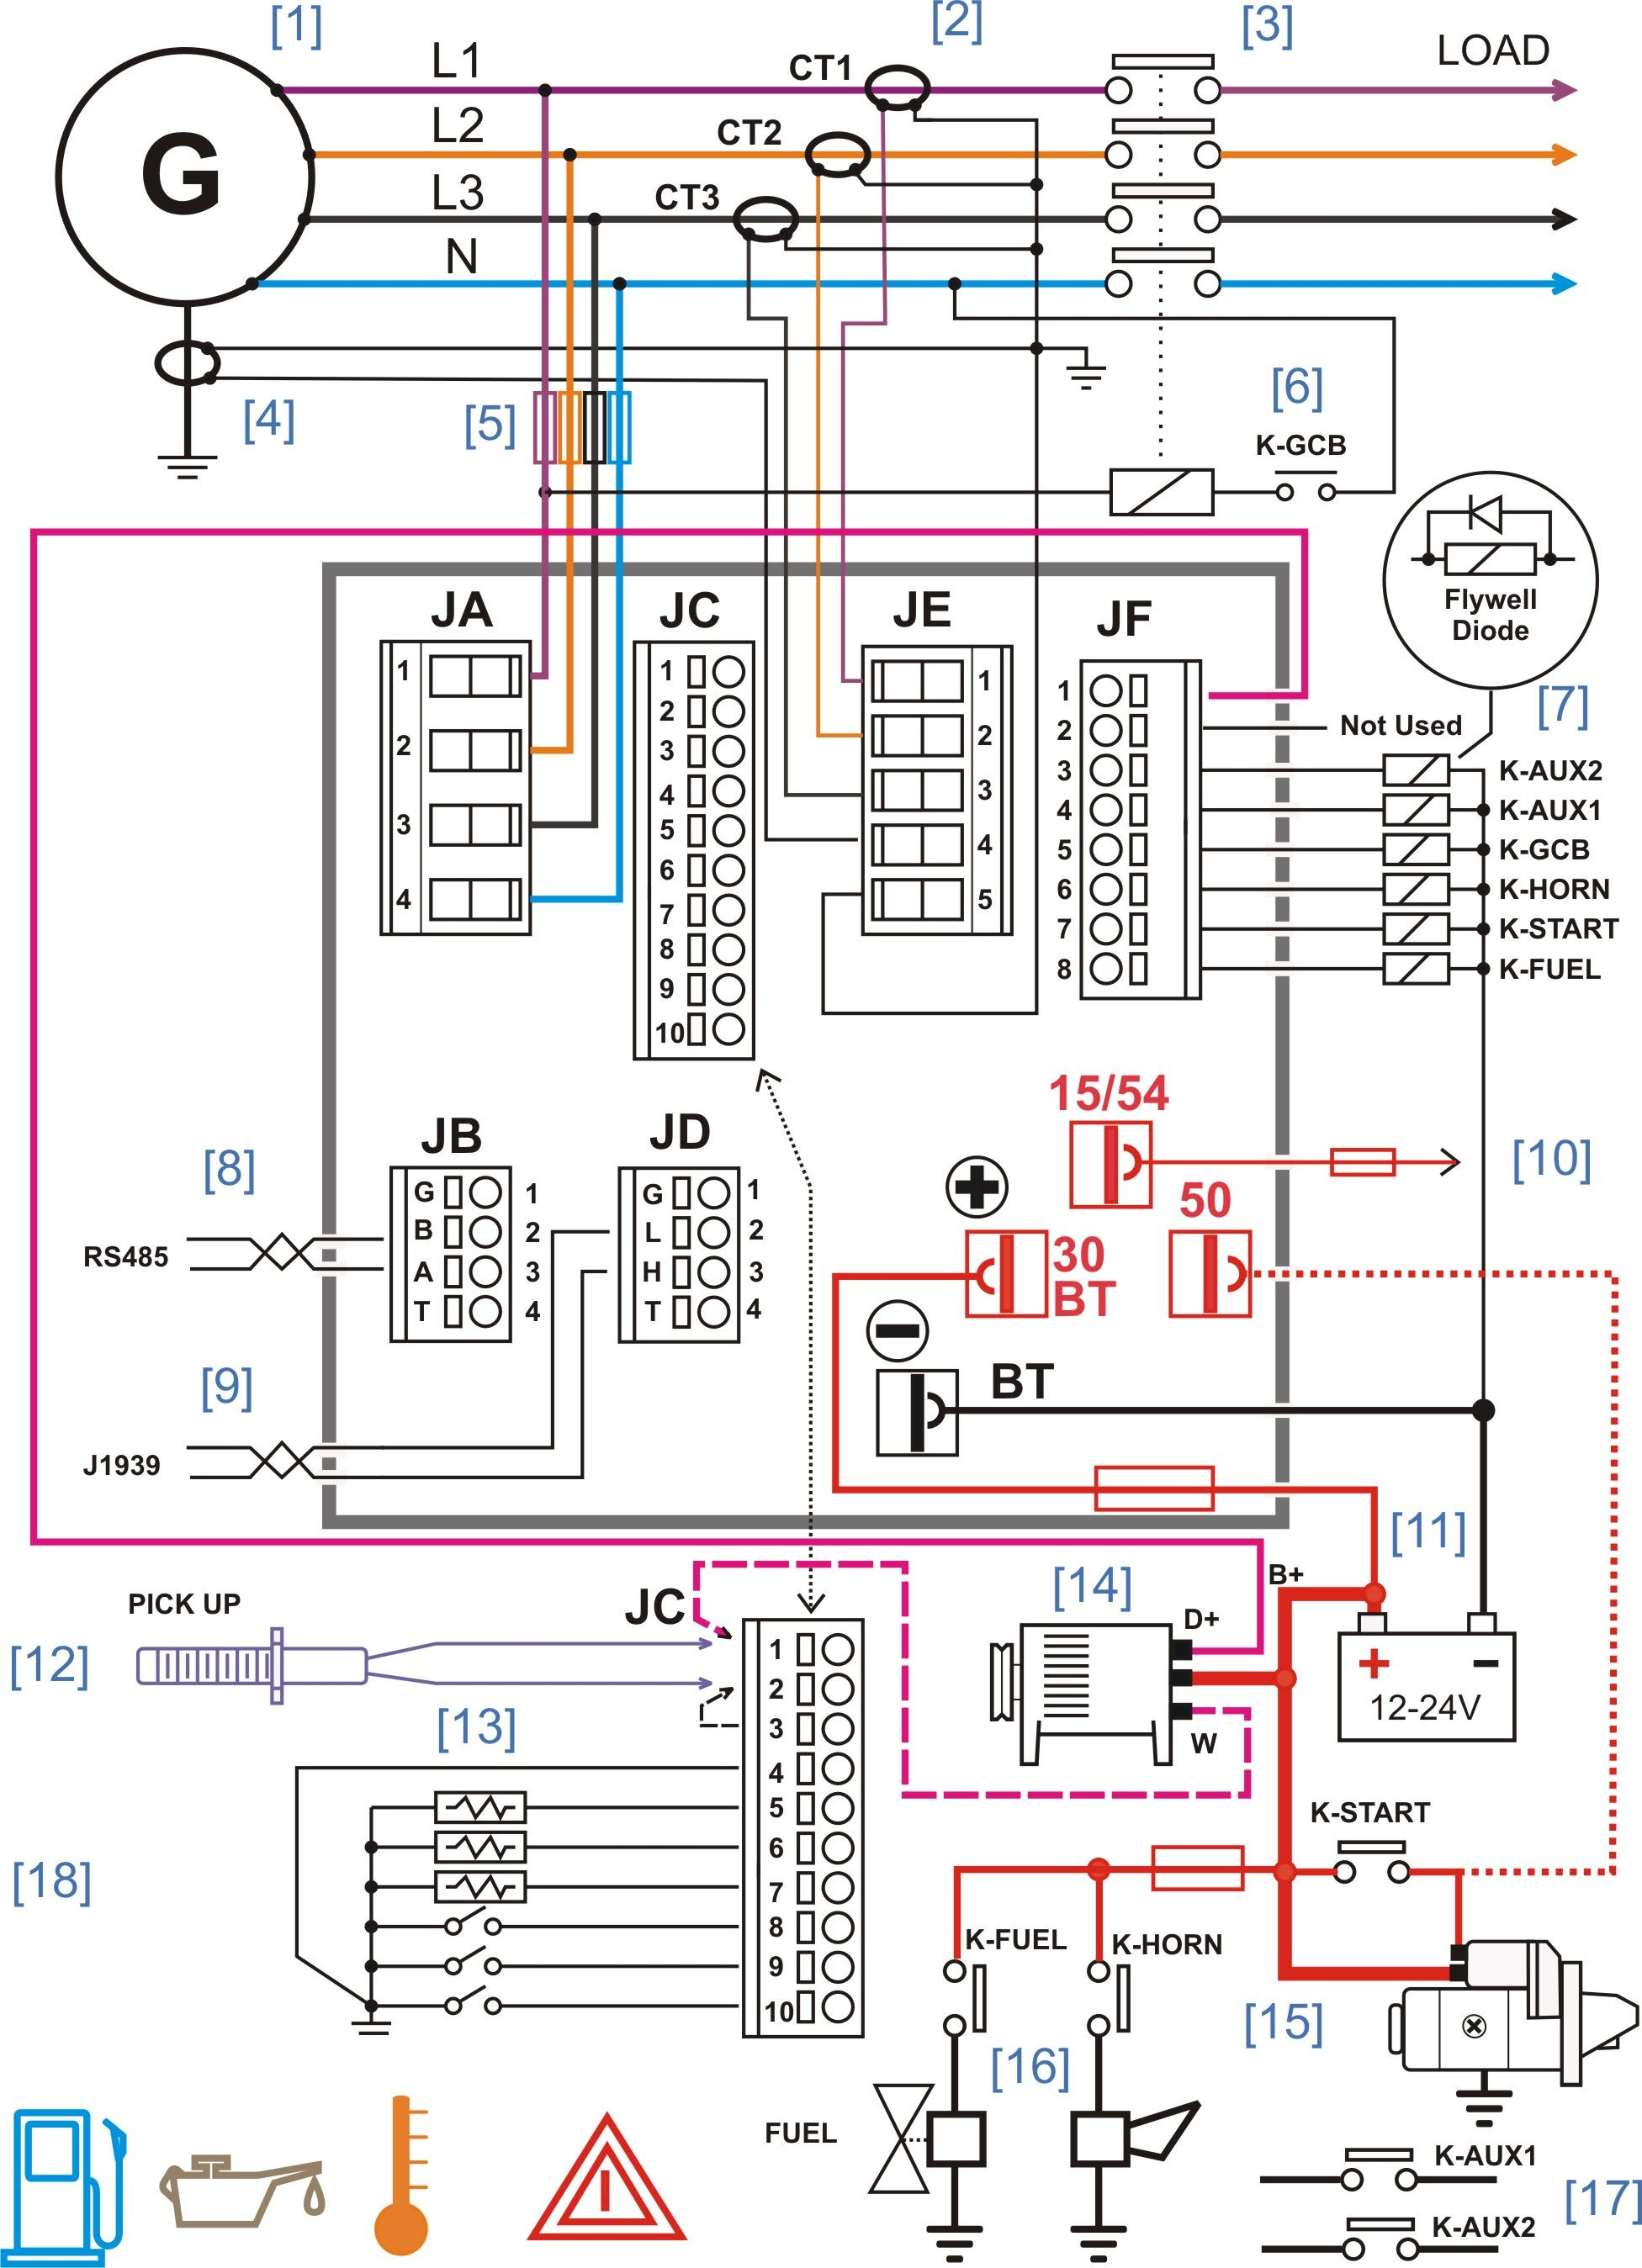 diesel generator control panel wiring diagram diesel generators rh pinterest com wiring diagram for generator changeover switch wiring diagram for generator plug